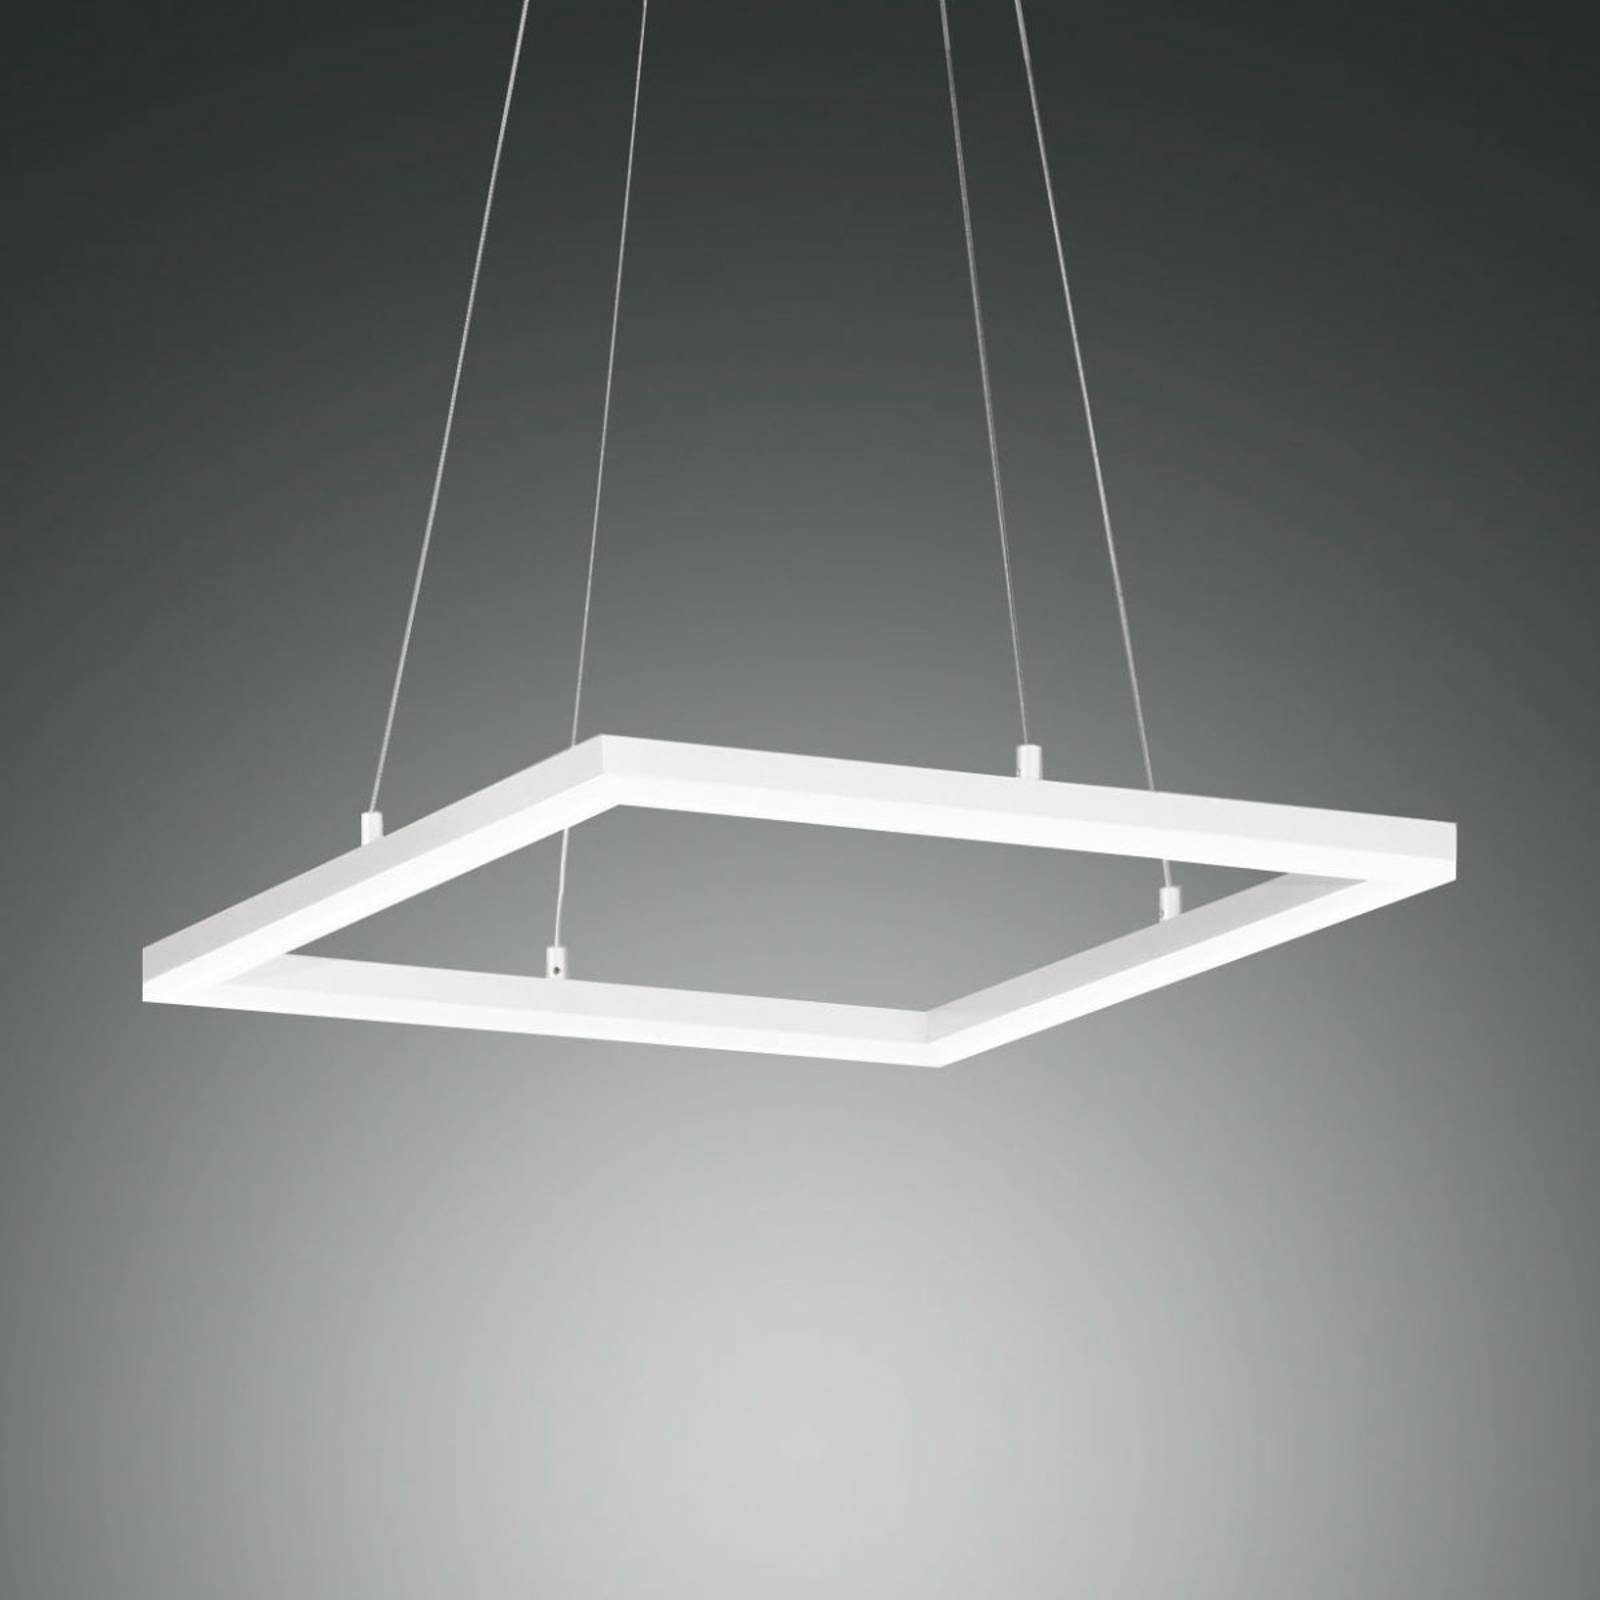 LED hanglamp Bard, 42x42cm in wit